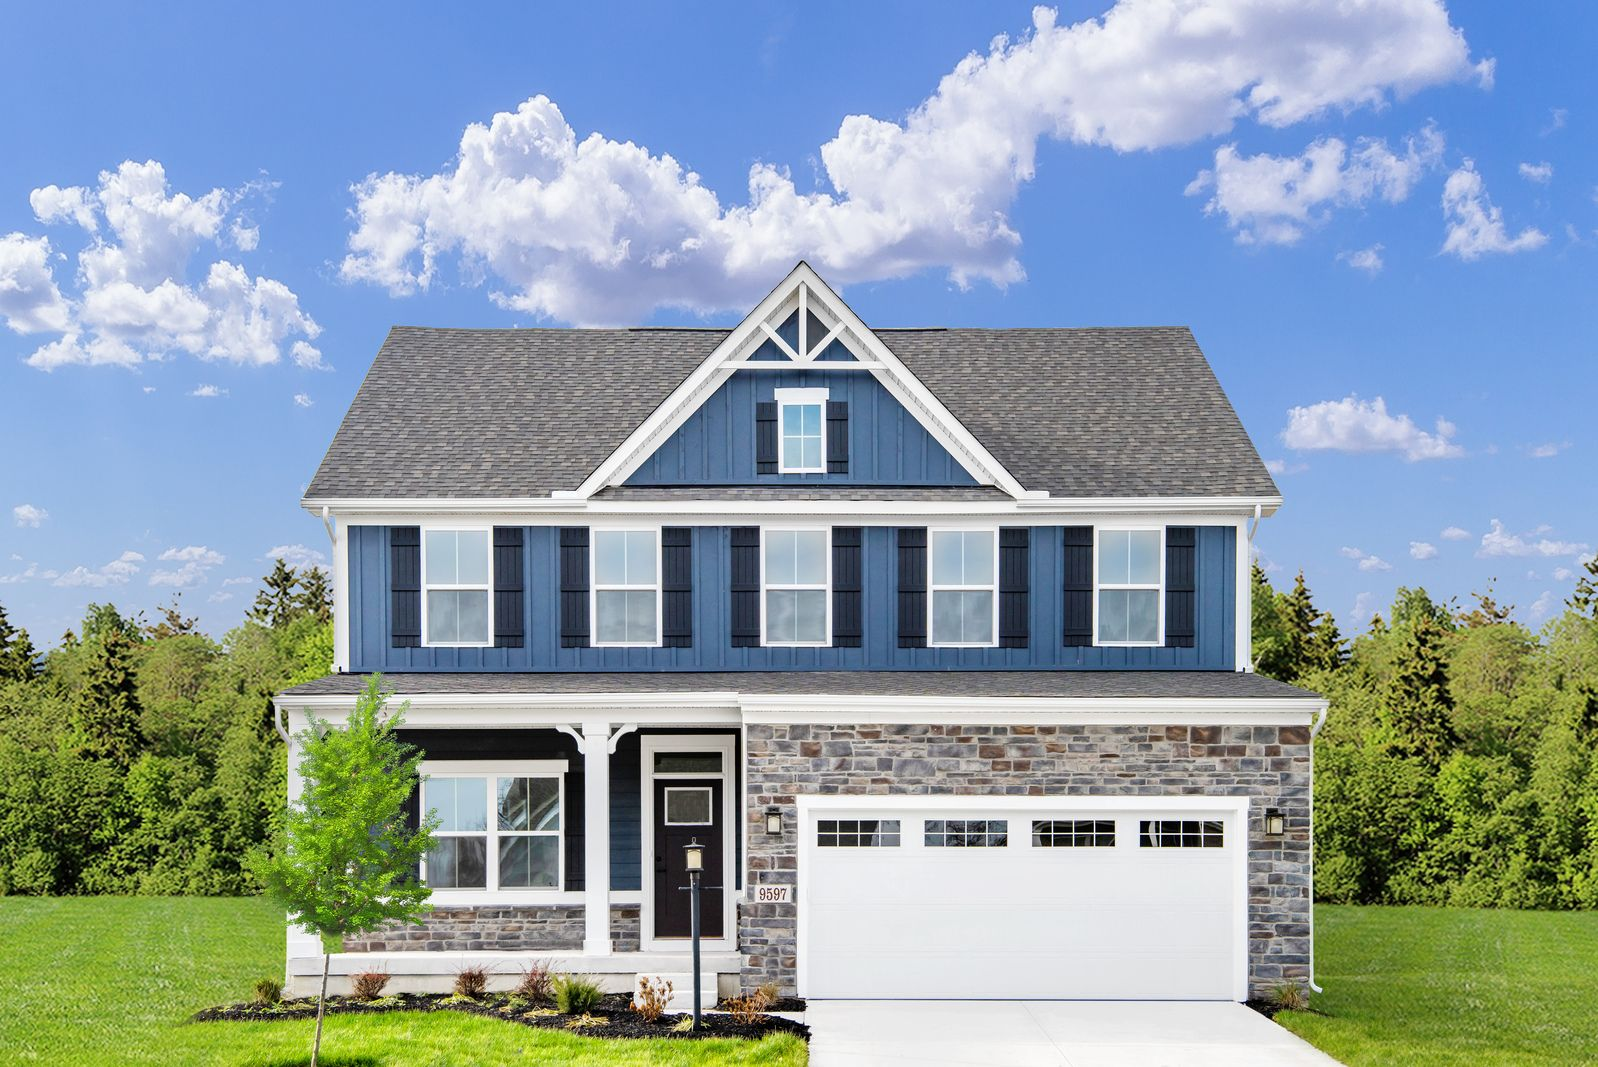 New 2-story and ranch homes in Waynesville Schools at The Legacy at Winding Creek:New 2-story & ranch homes, Waynesville Schools. Community pool, included finished basements, no rear neighbor homesites, 5 min. to Austin Landing— Low $300s.Schedule your visit today!